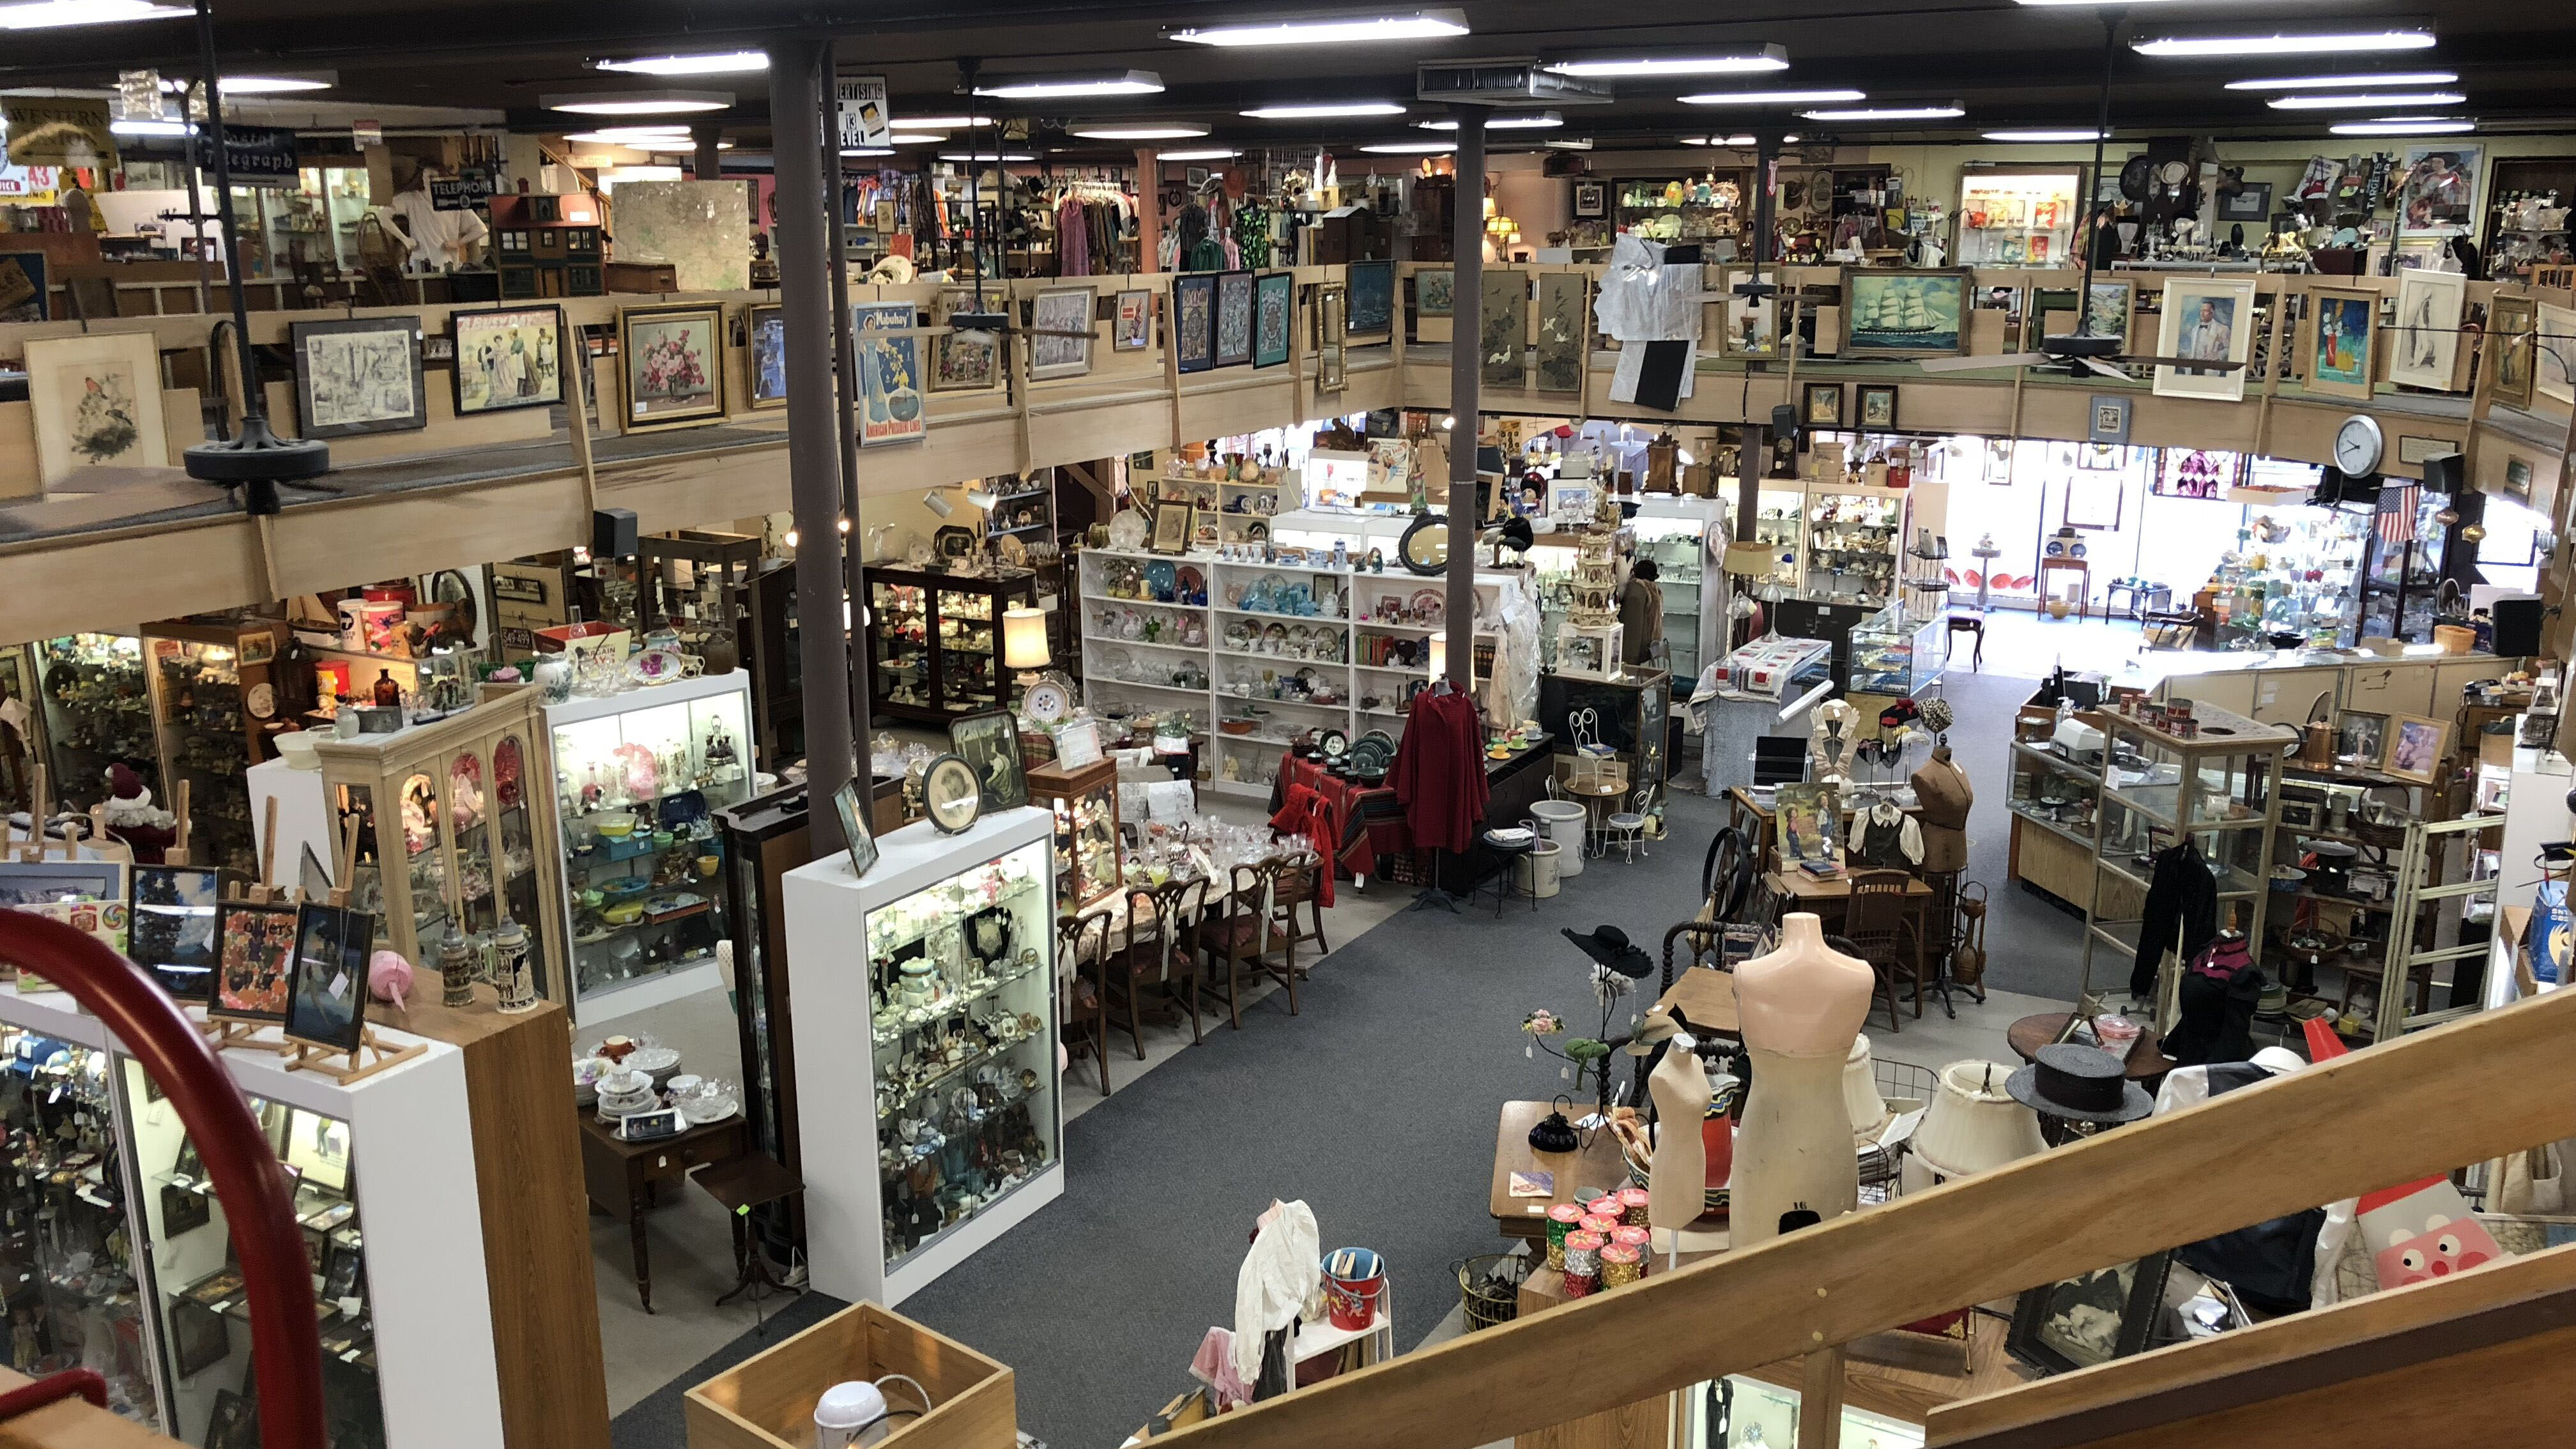 In the 1990s, small, independent antique shops began to fold and dealers relocated into large antique malls. Midtown Antiques in Stillwater, Minnesota is likely the largest in the upper Midwest.